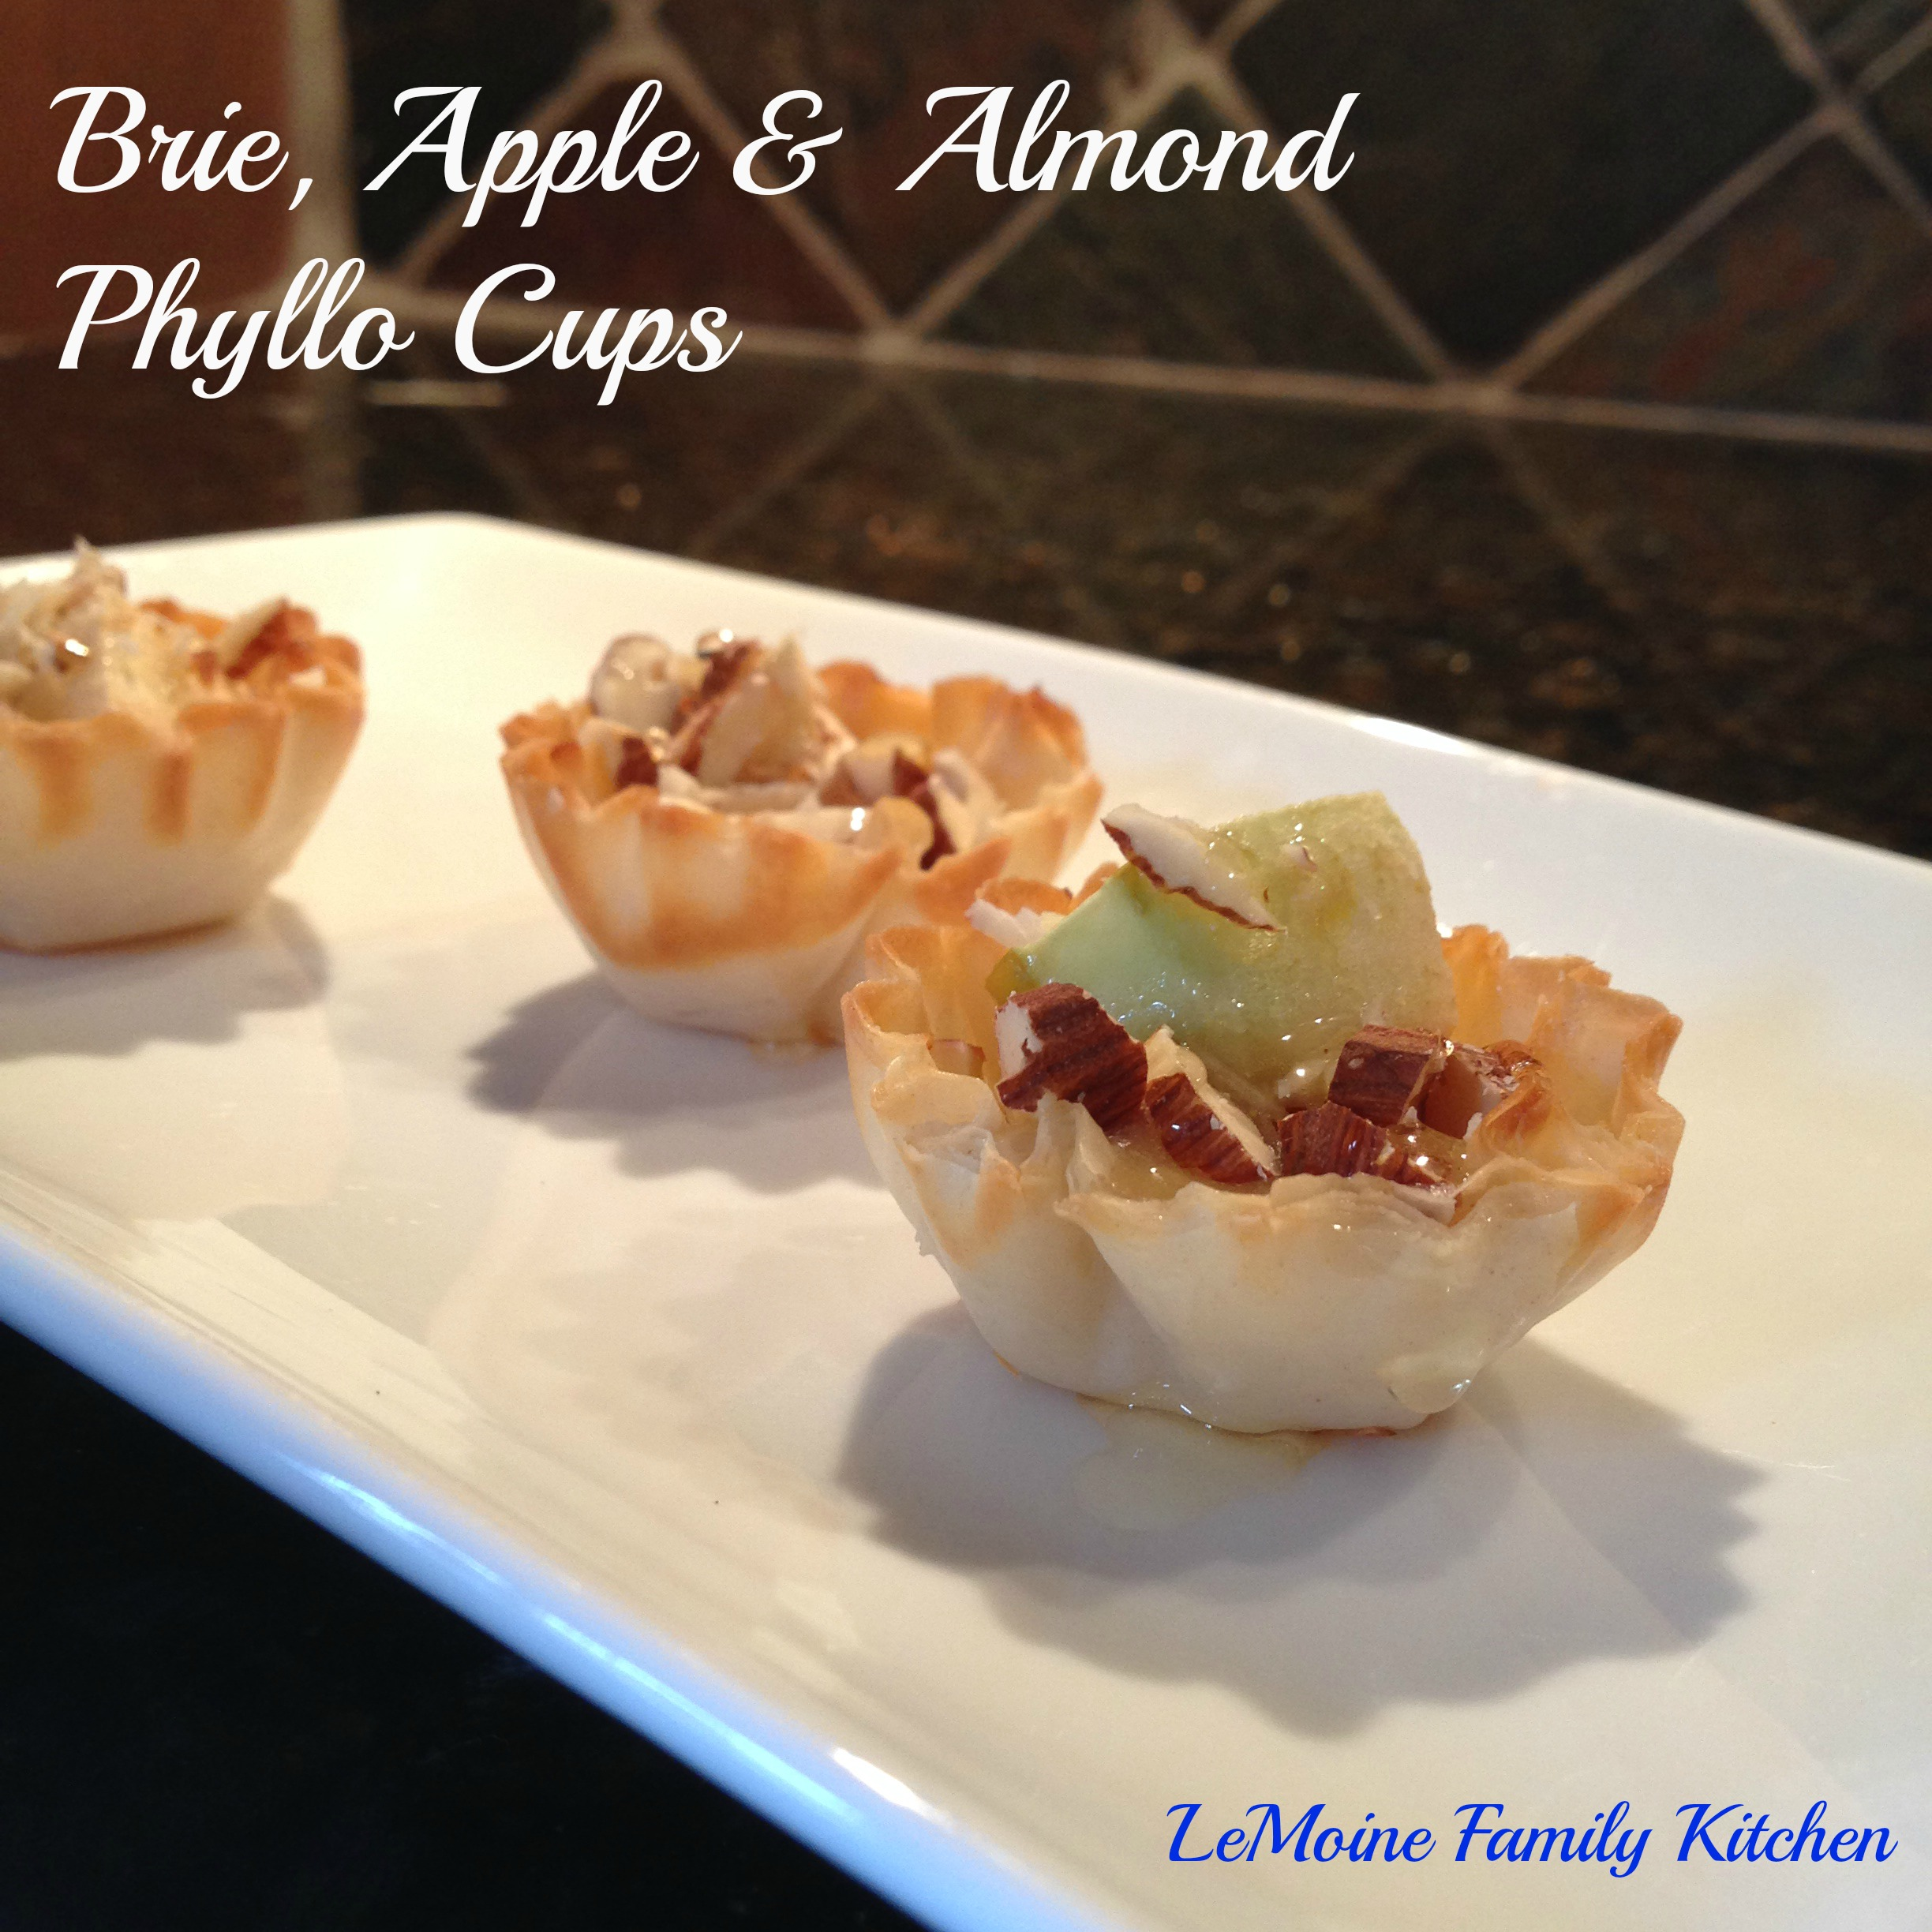 Brie, Apple & Almond Phyllo Cups